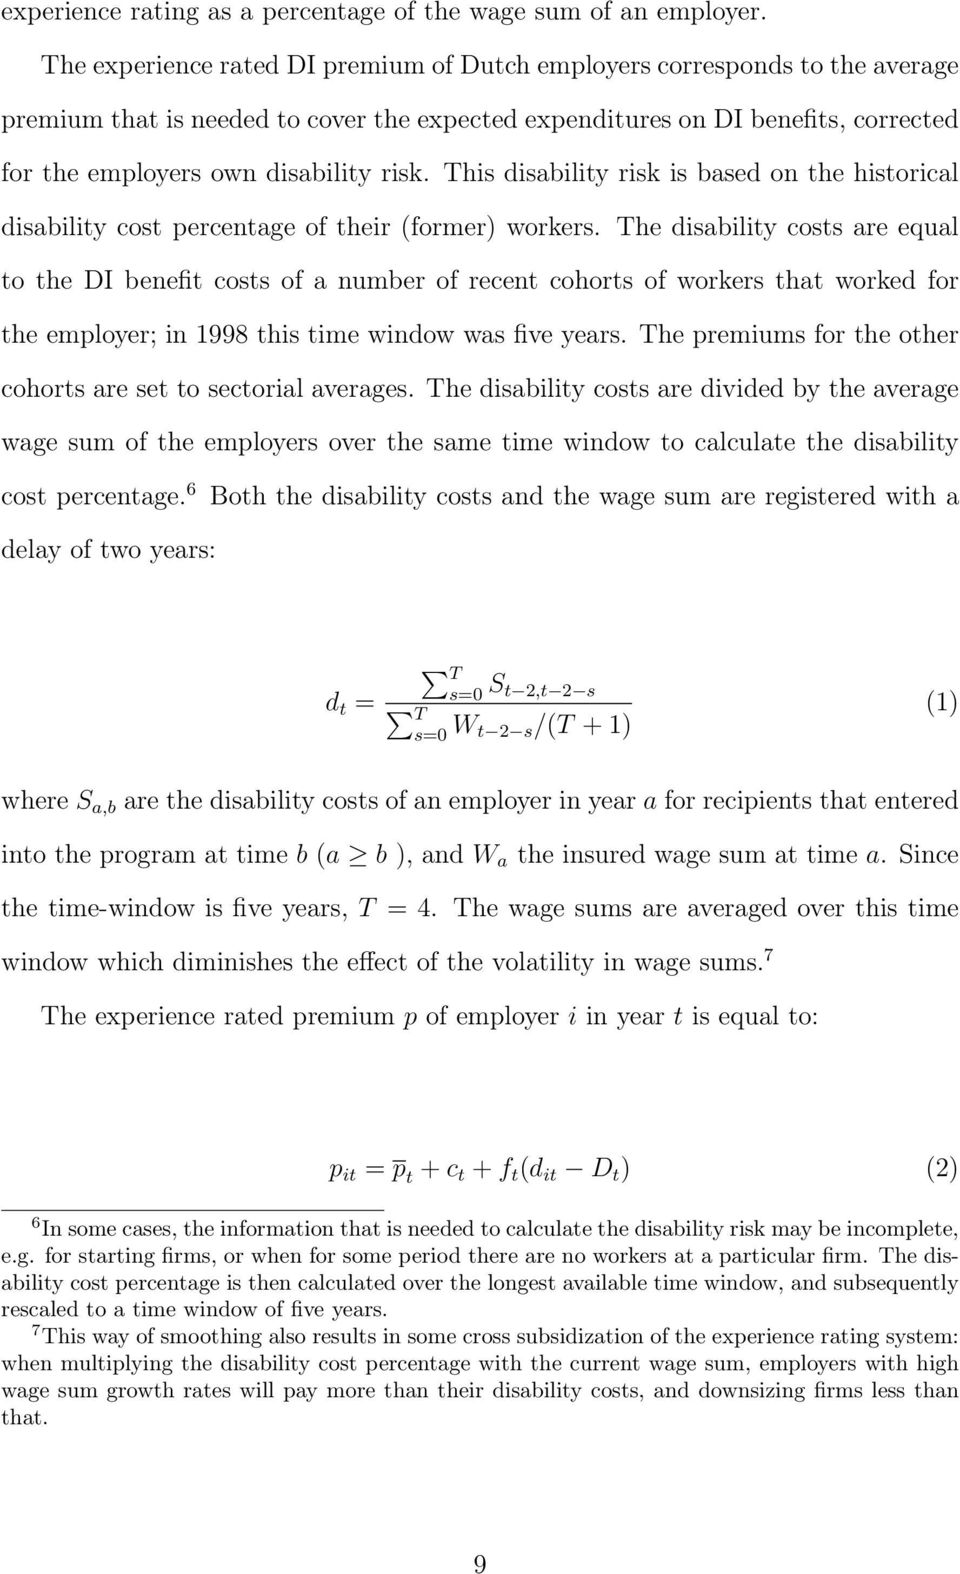 This disability risk is based on the historical disability cost percentage of their (former) workers.